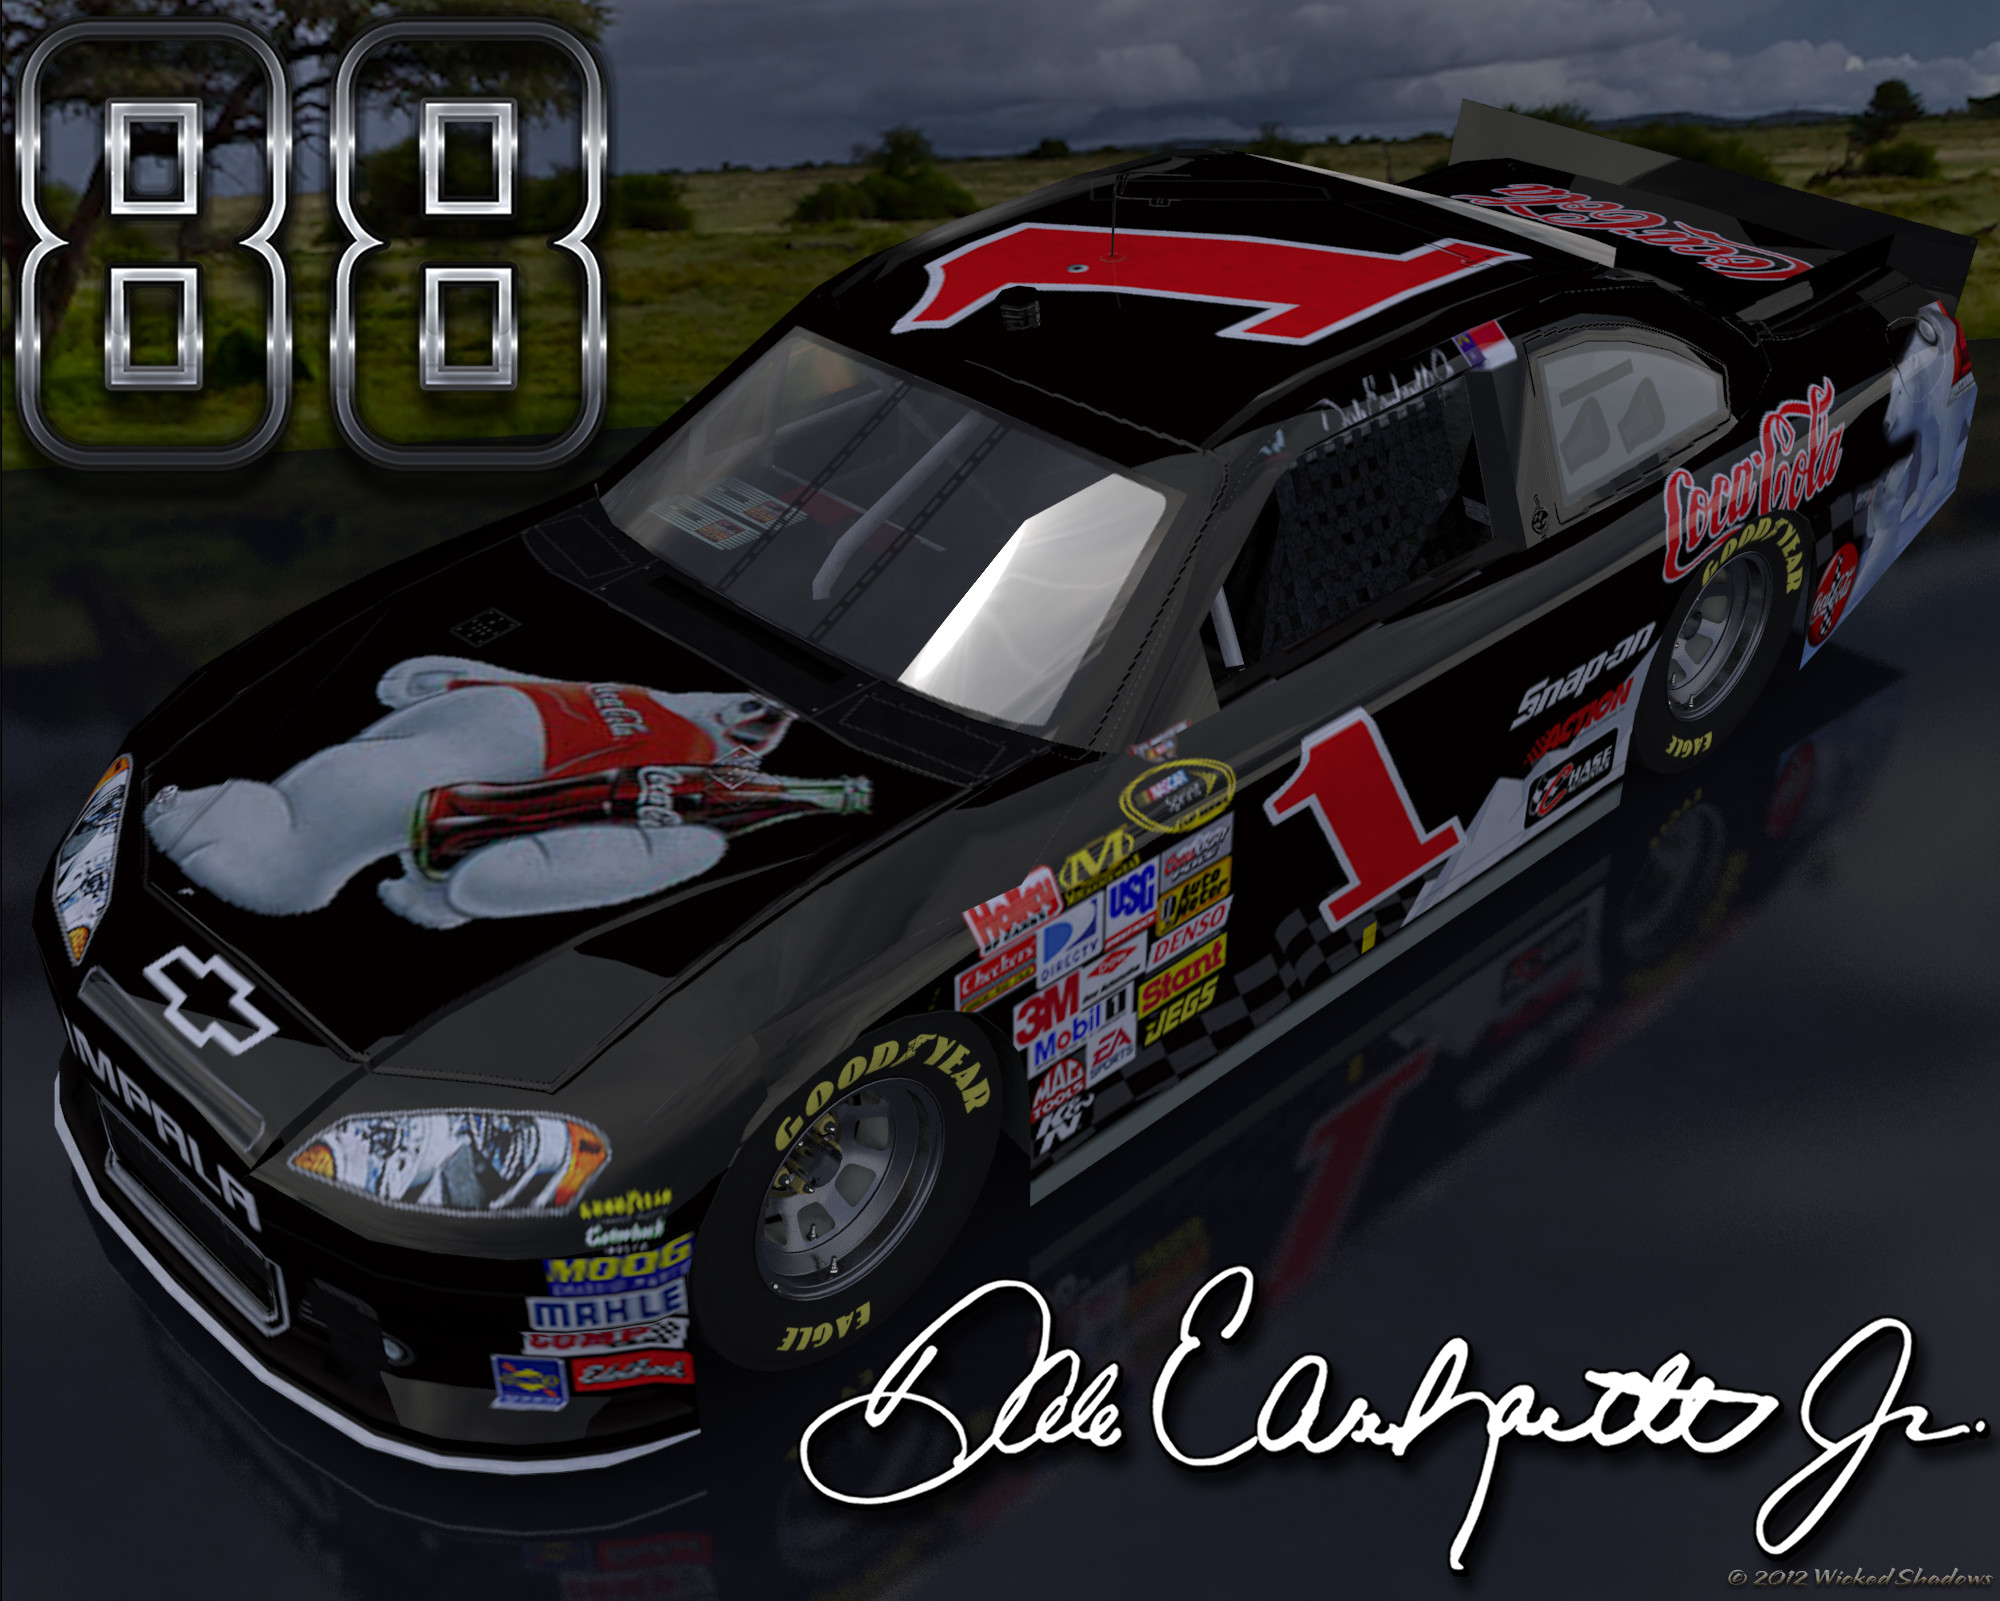 2000x1601 Dale Earnhardt Wallpapers in Best  px Resolutions